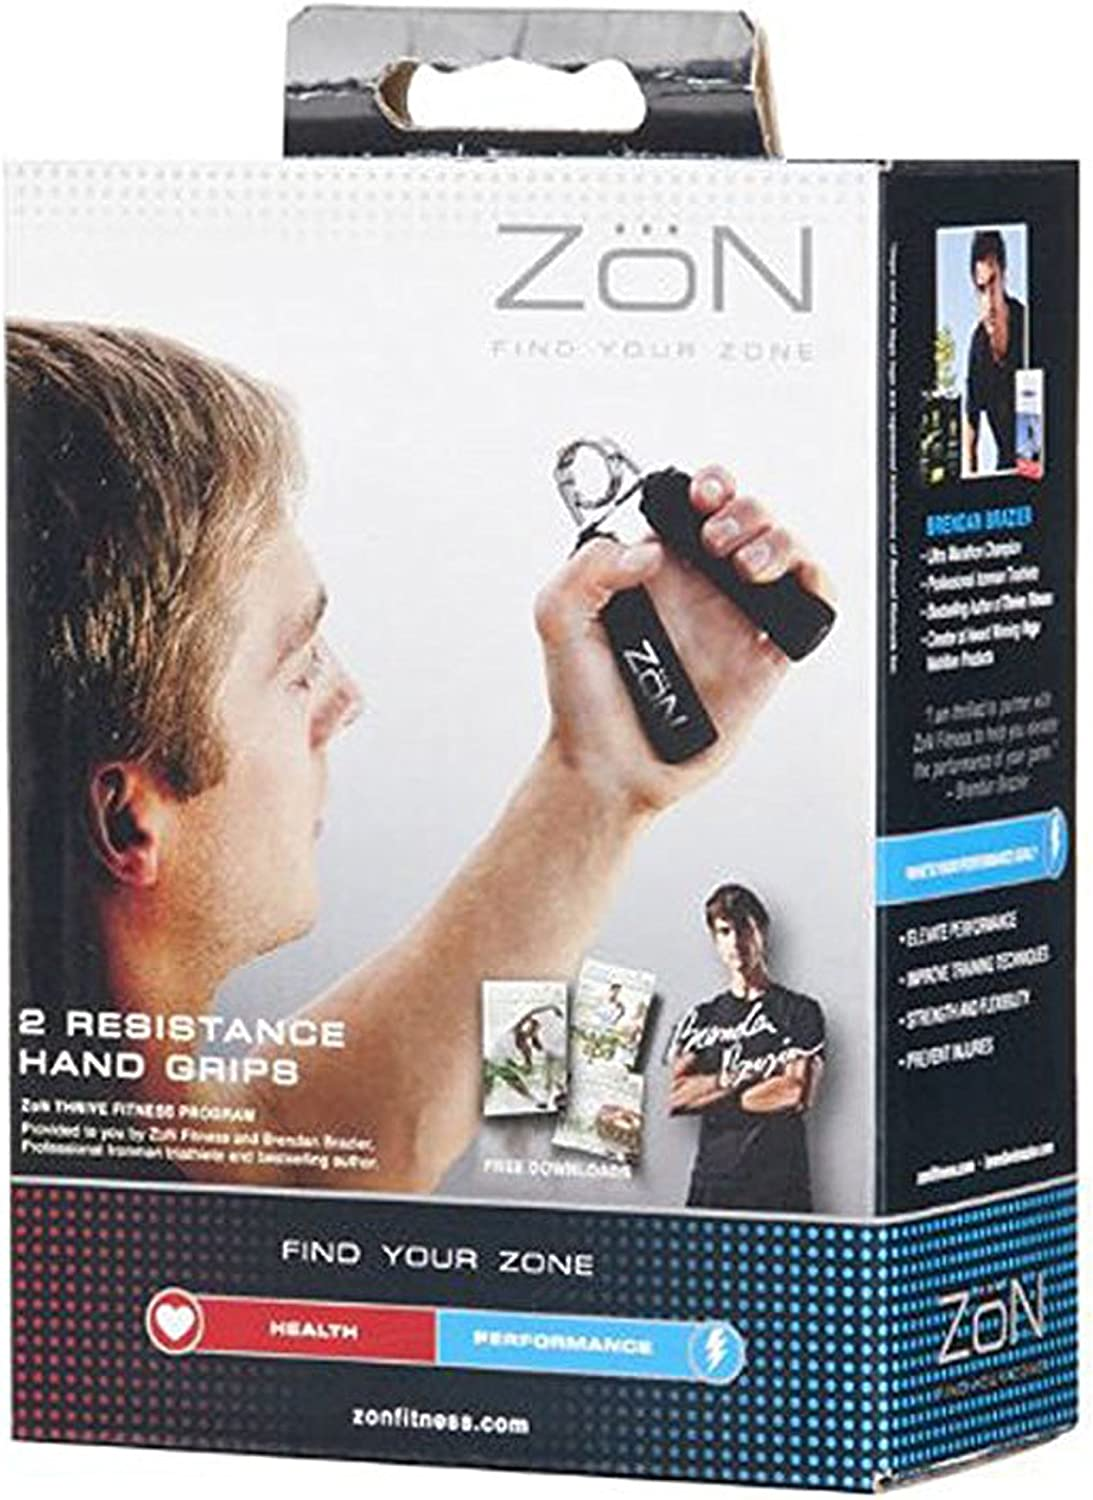 ZON Resistance Strength Hand Las Vegas Mall - Grips Max 69% OFF Pack 2